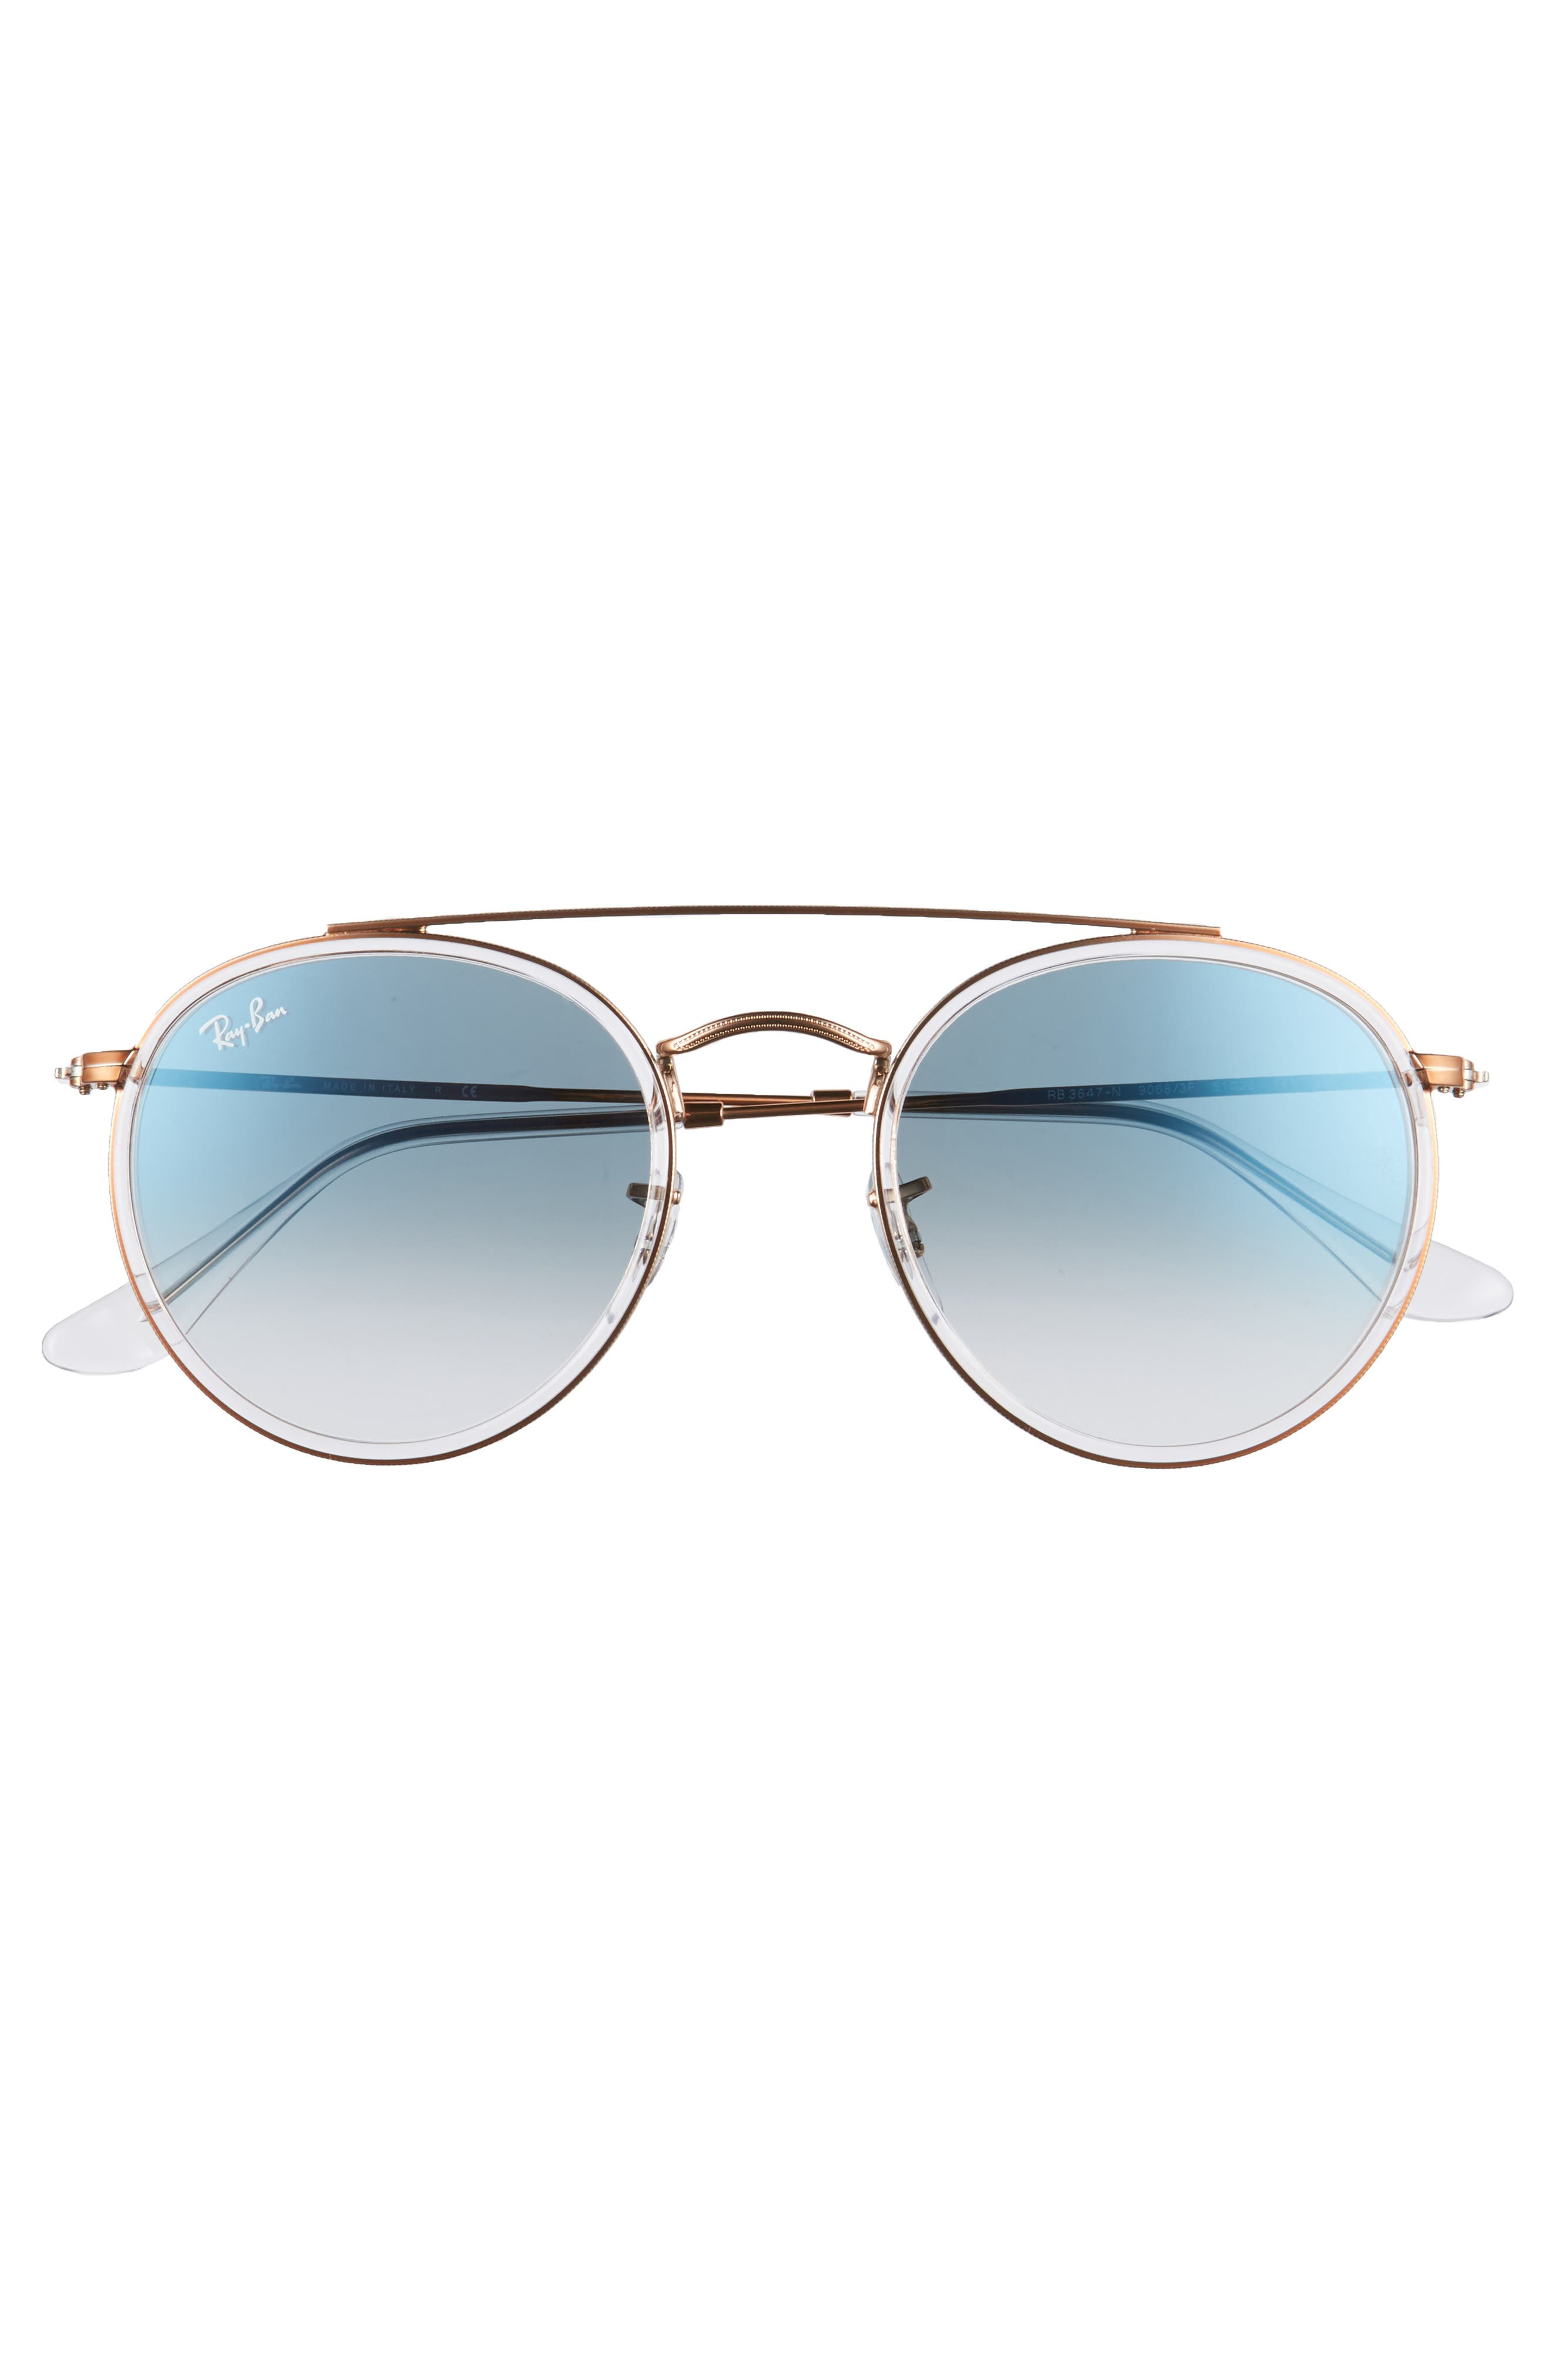 Alternate Image 3  - Ray-Ban 51mm Aviator Gradient Lens Sunglasses